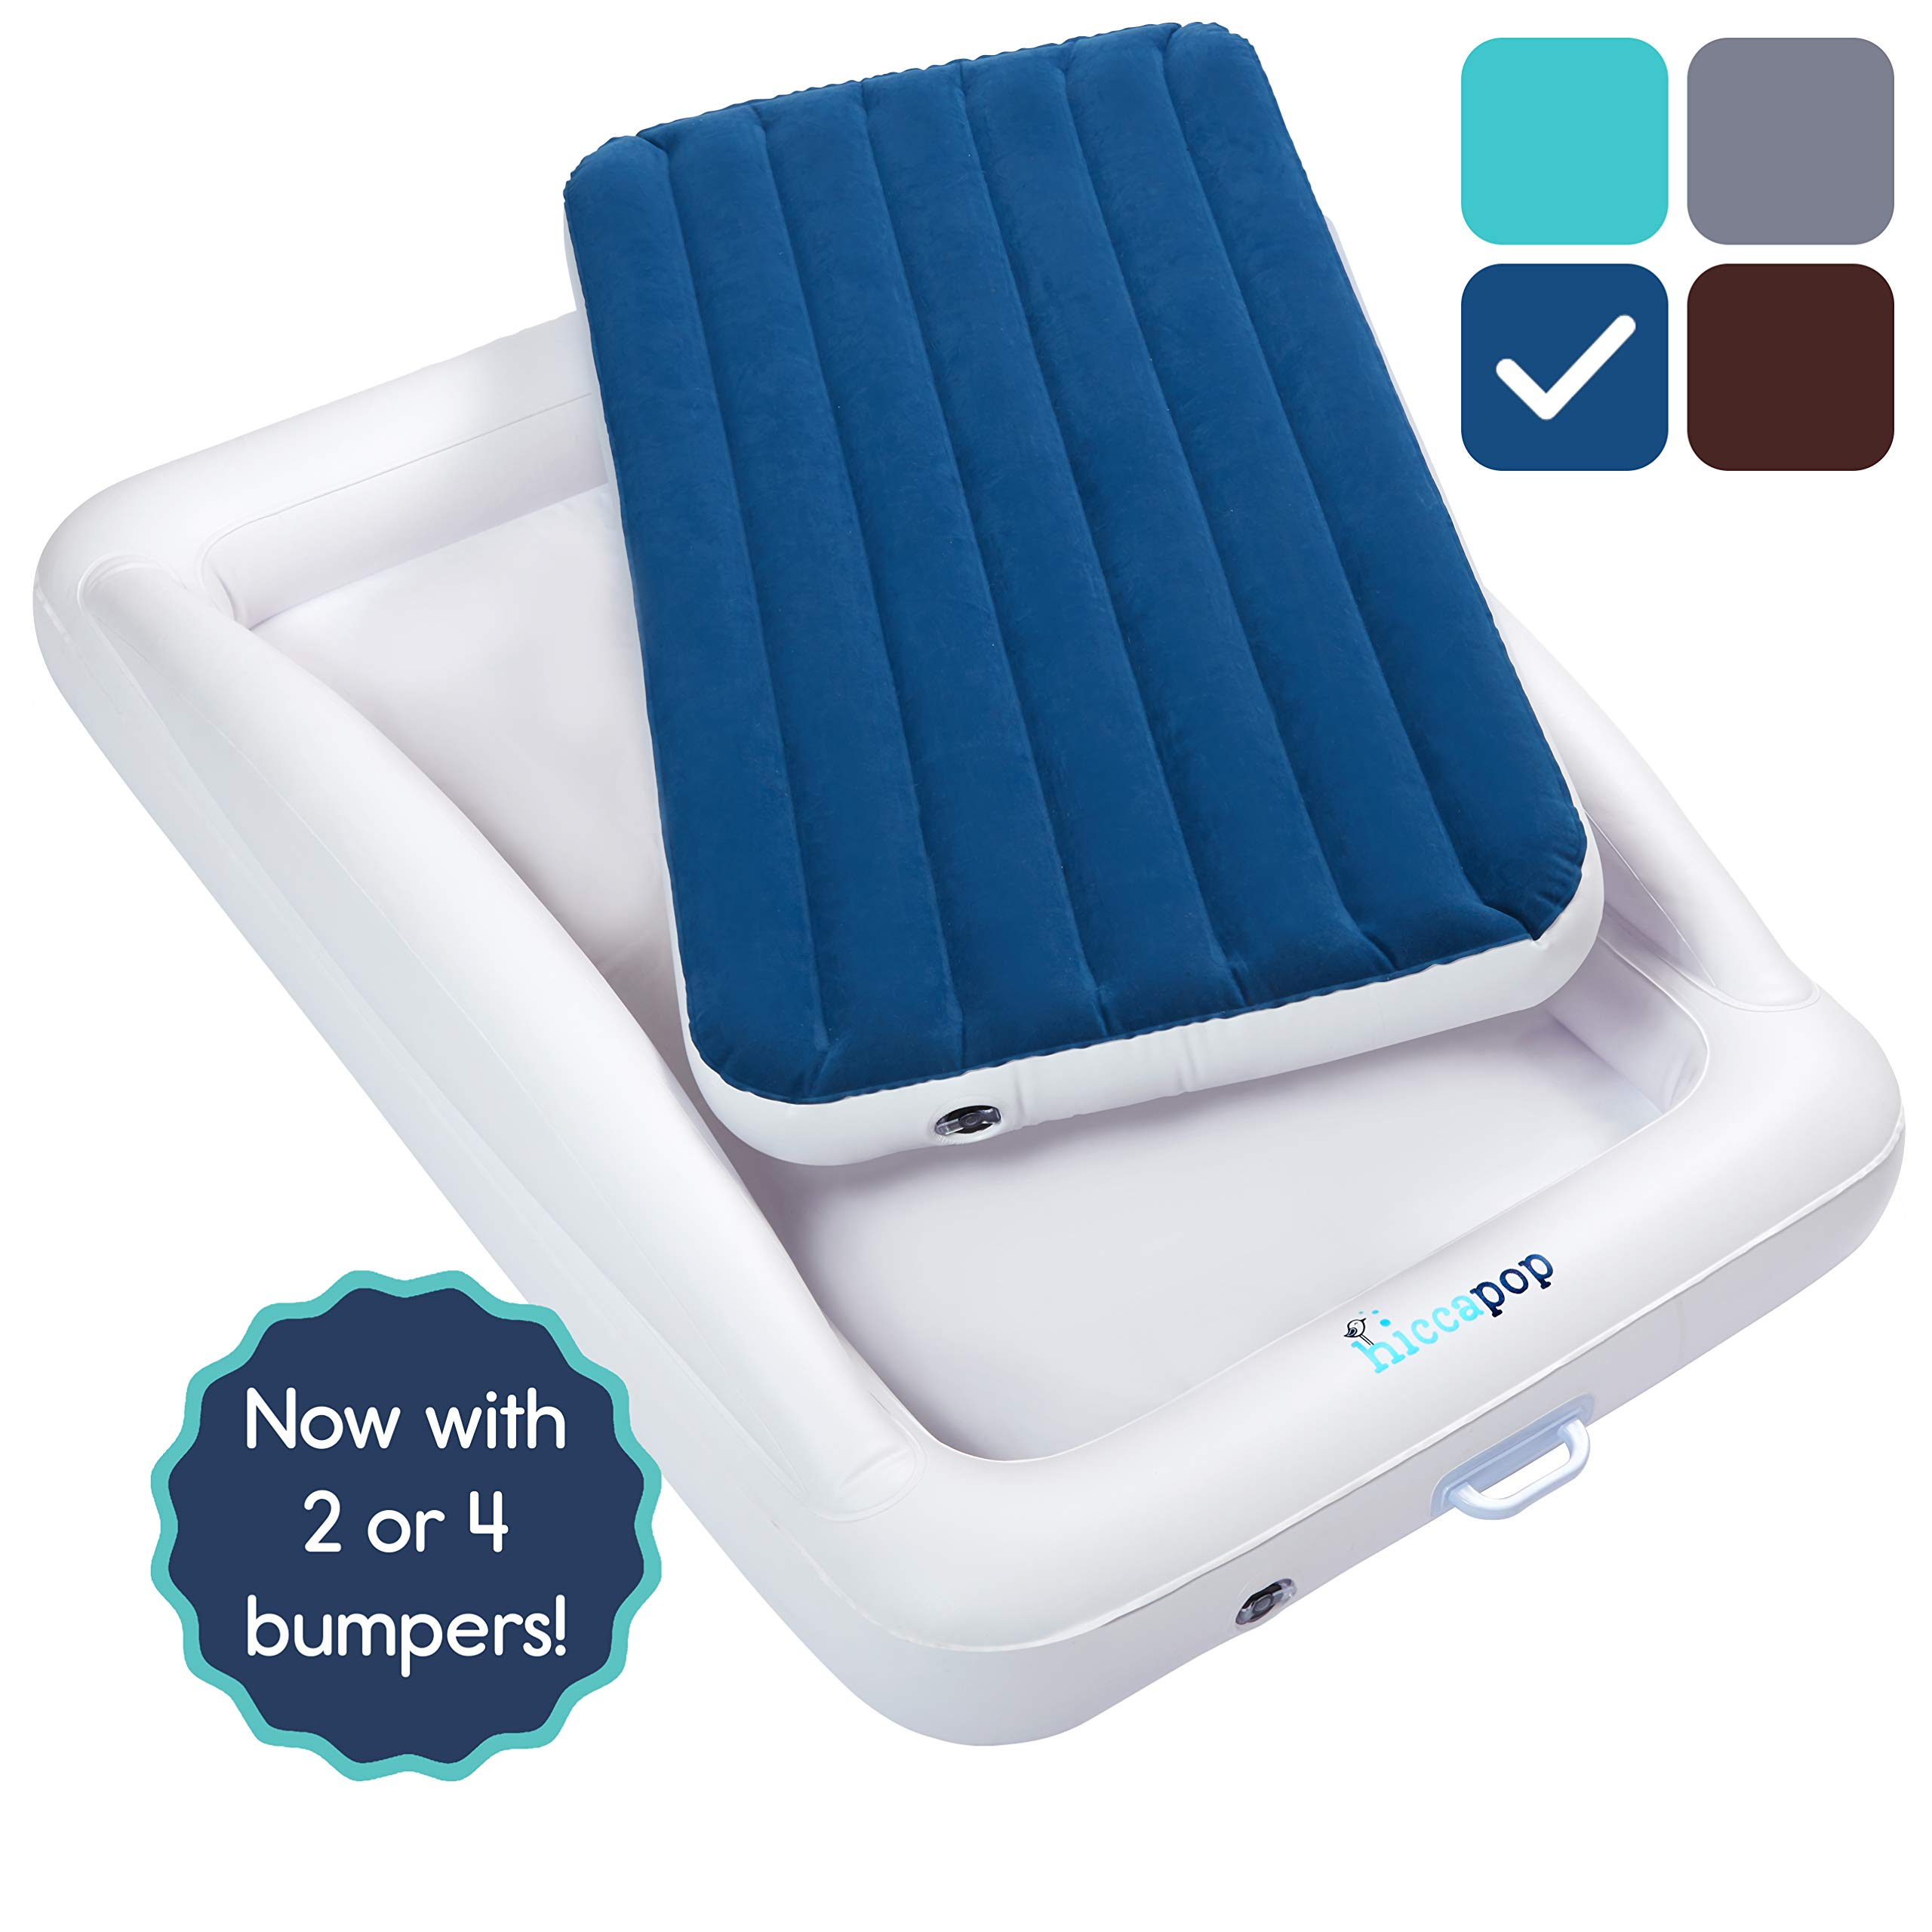 hiccapop Inflatable Toddler Travel Bed with Safety Bumpers | Portable Blow Up Mattress for Kids with Built in Bed Rail - Navy Blue by hiccapop